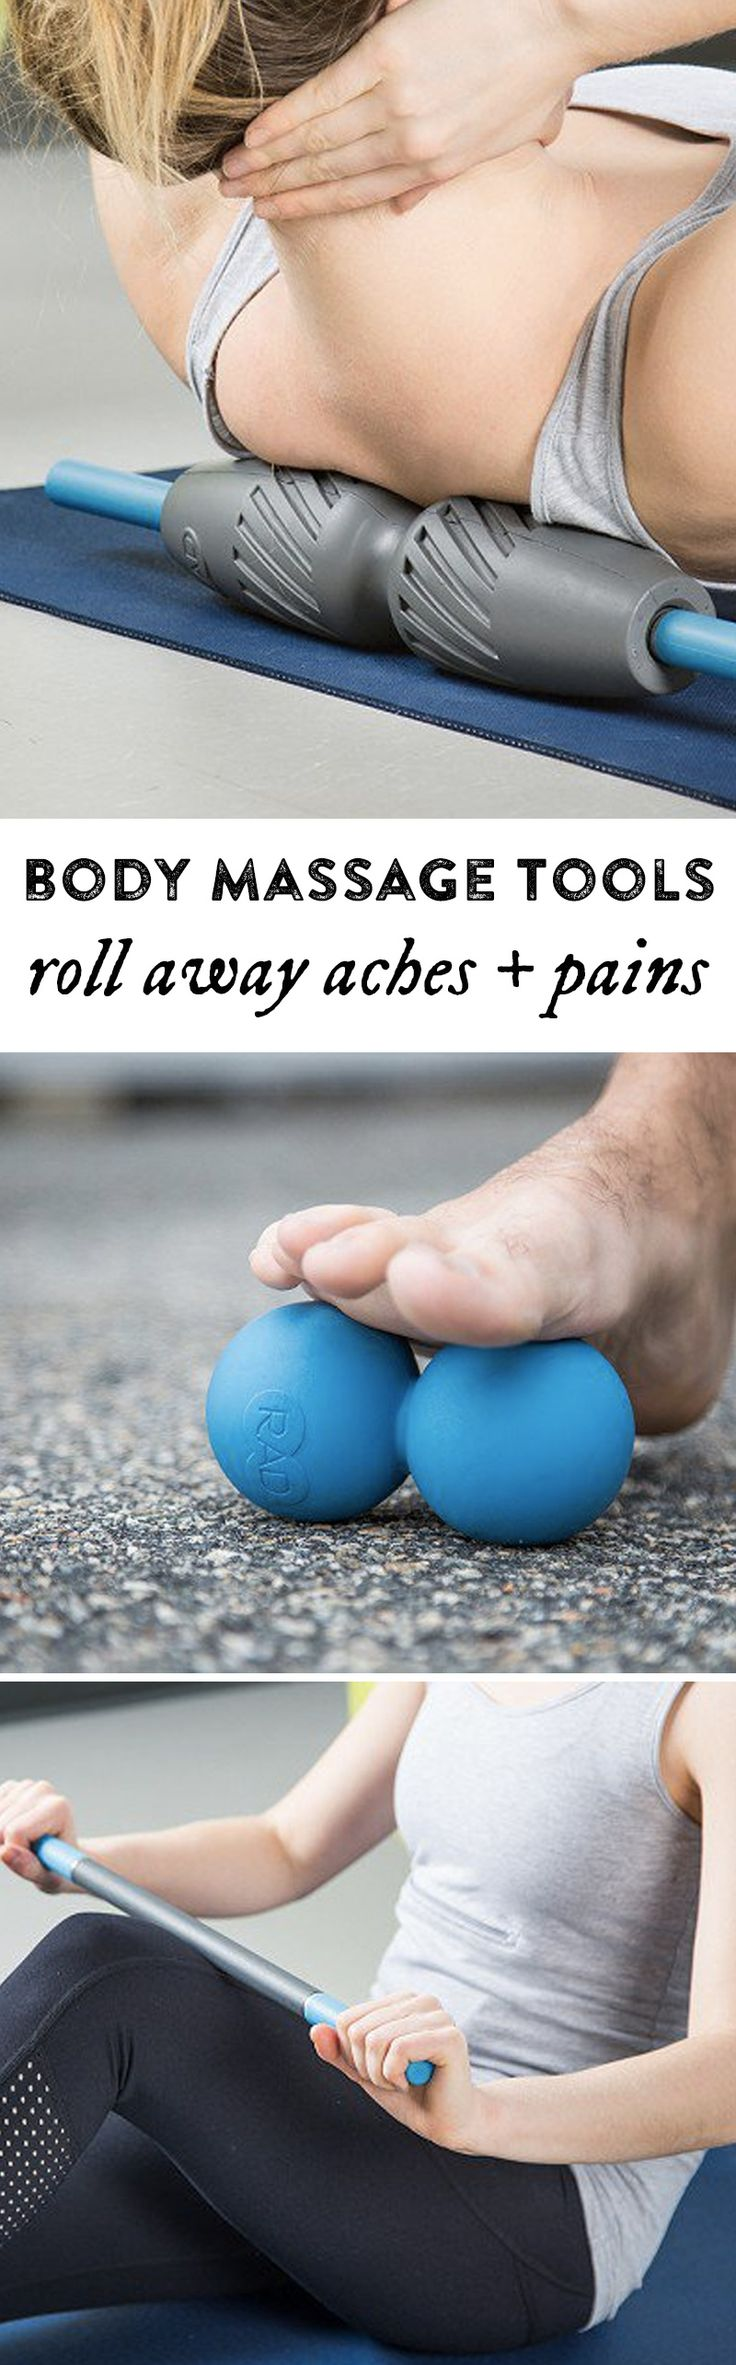 These ergonomic massagers are made to target muscles and soft tissues more easily. By slowly and steadily rolling them over or under different parts of your body, you can help free up movement and even clean out toxins.